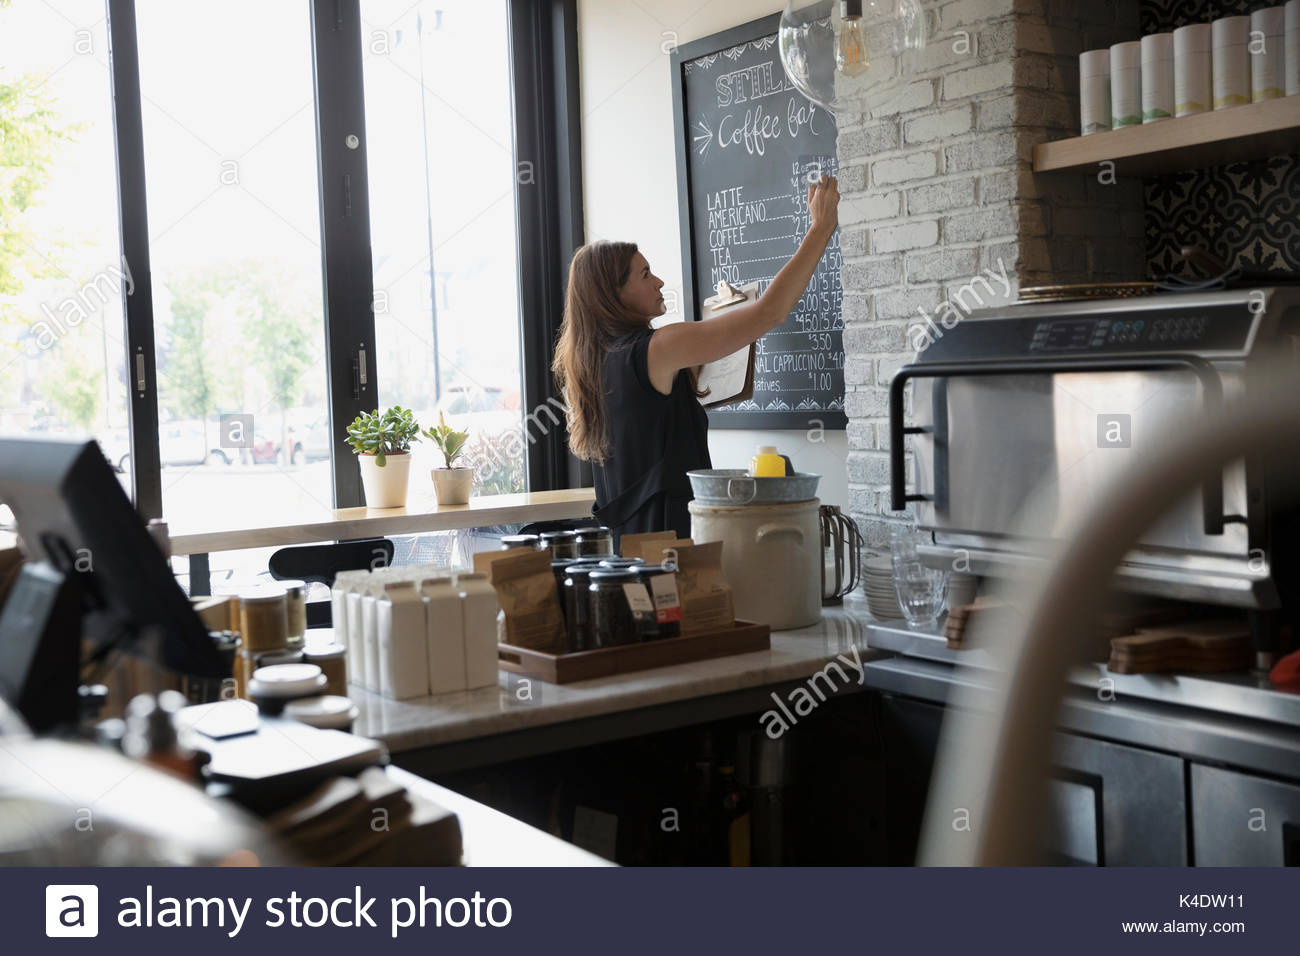 Female cafe owner writing menu and prices on blackboard - Stock Image